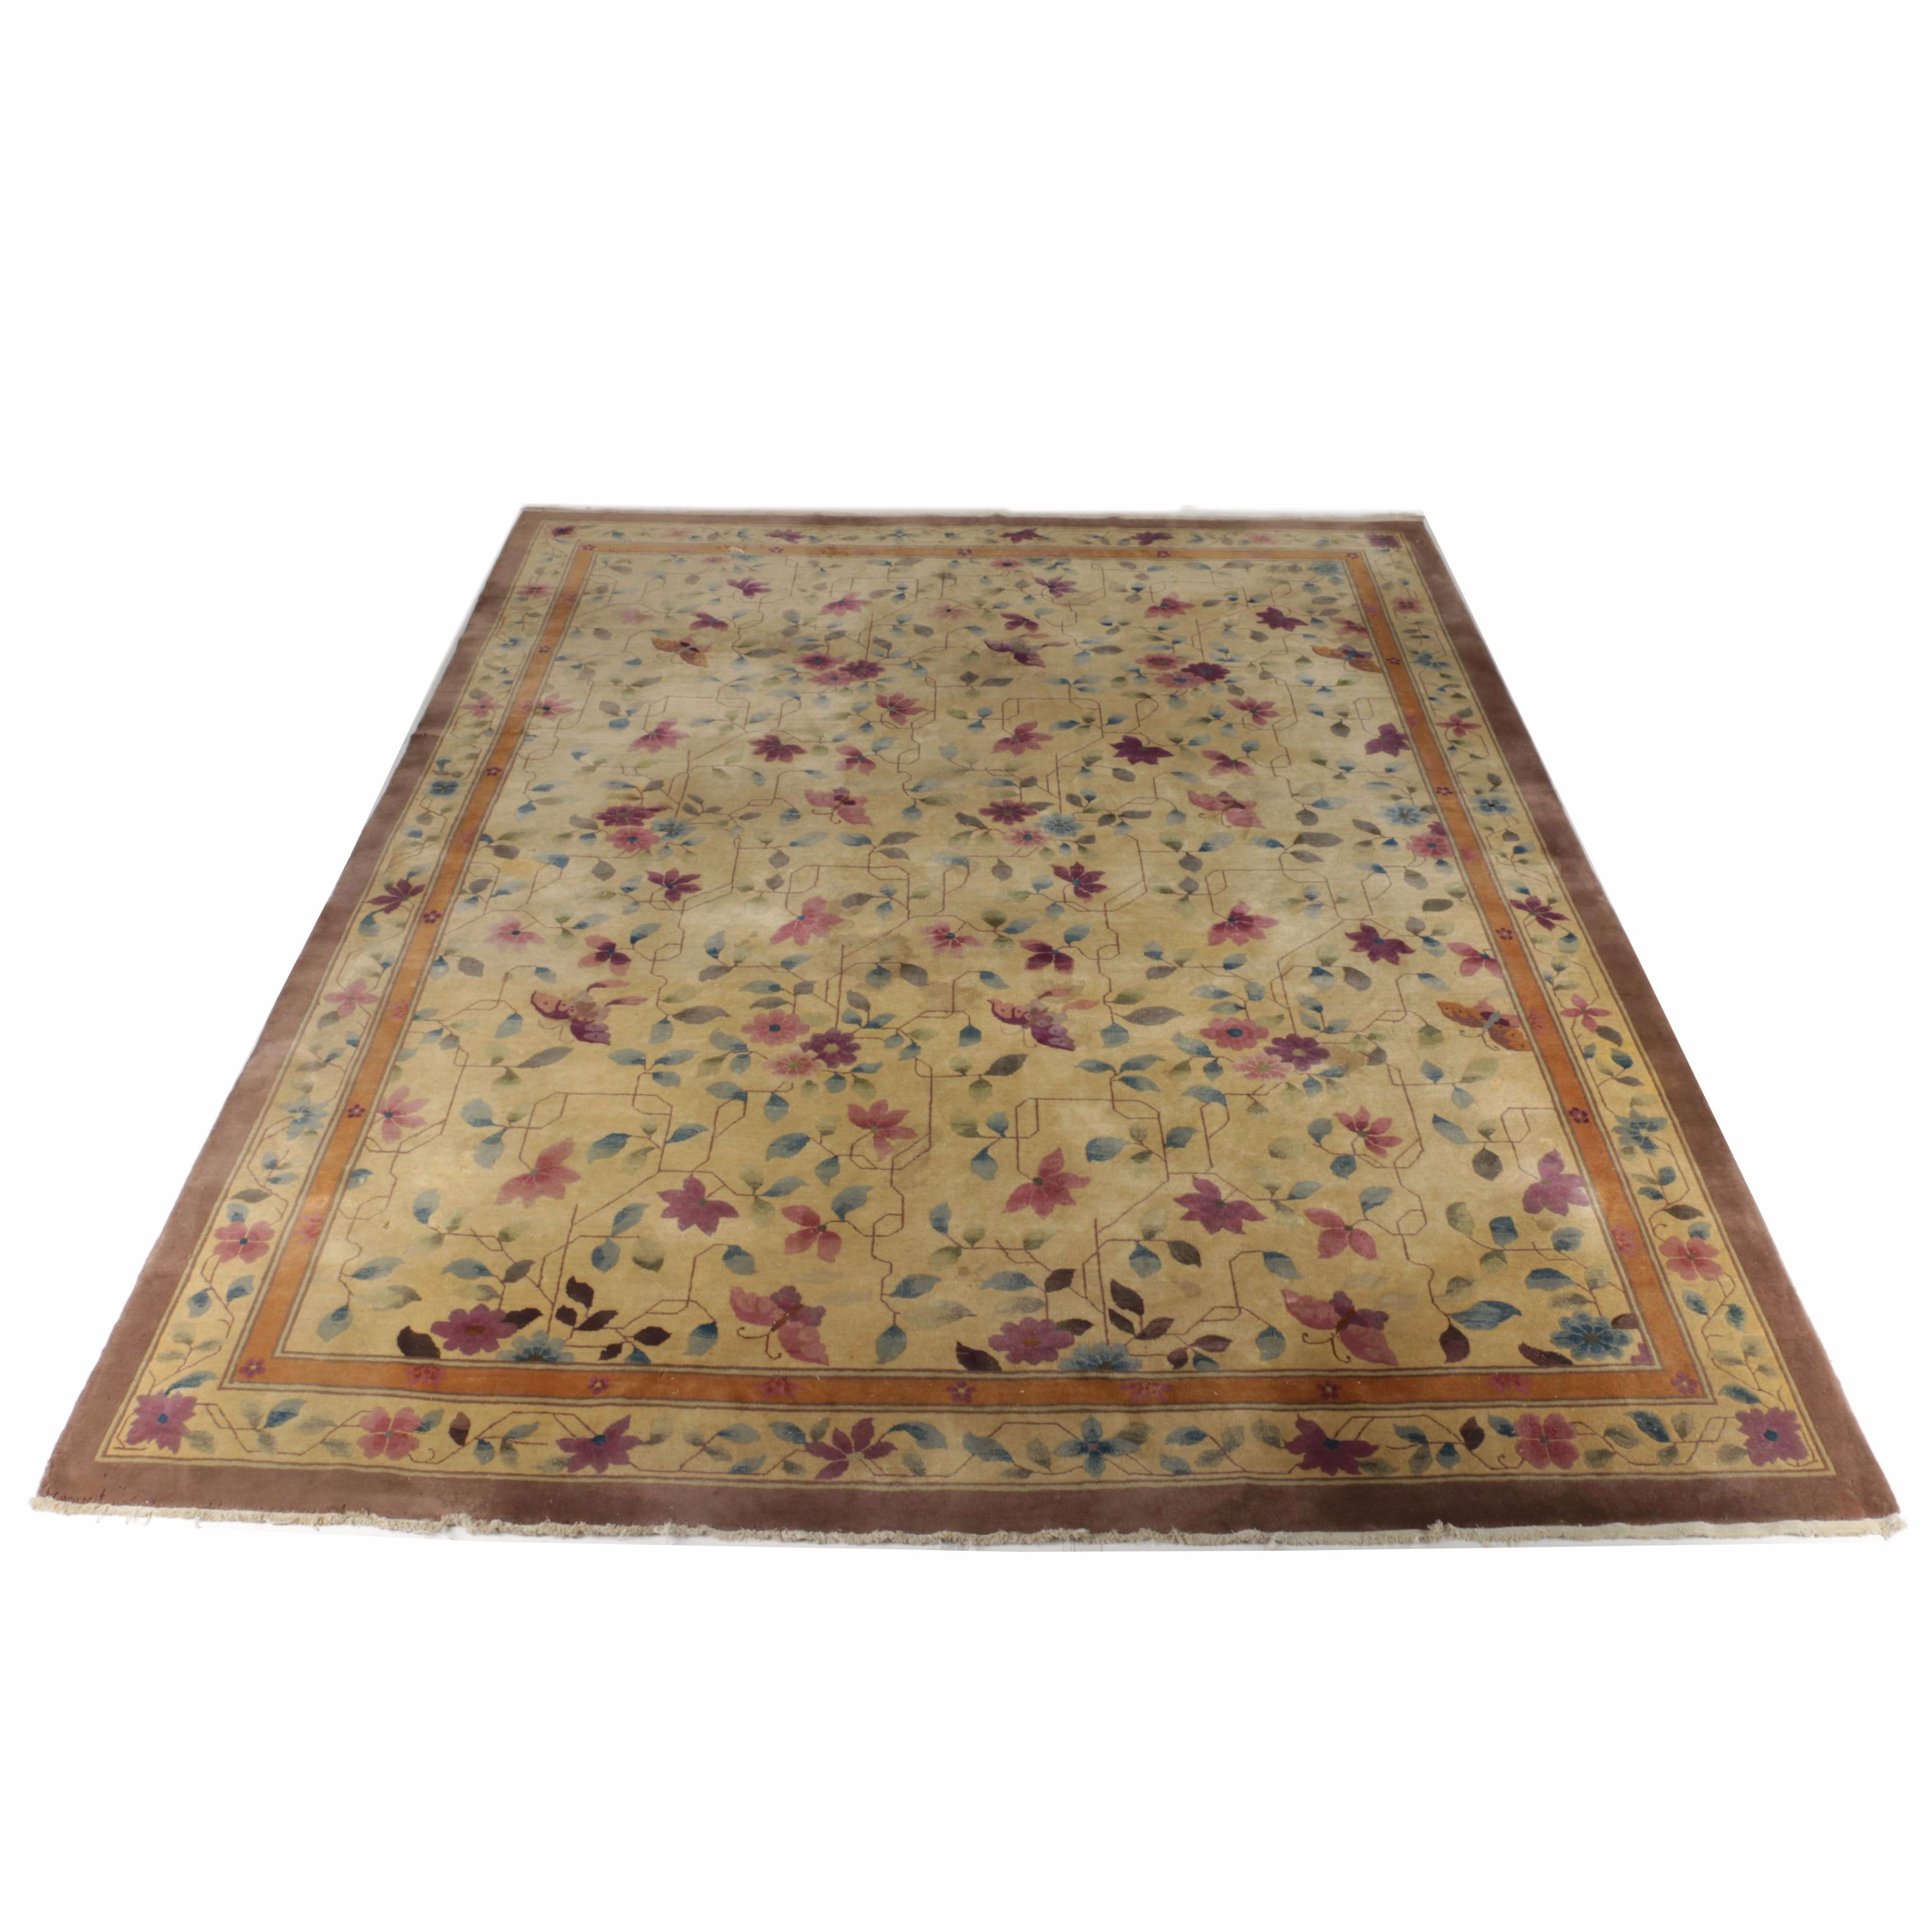 Vintage Hand-Knotted Chinese Floral Area Rug